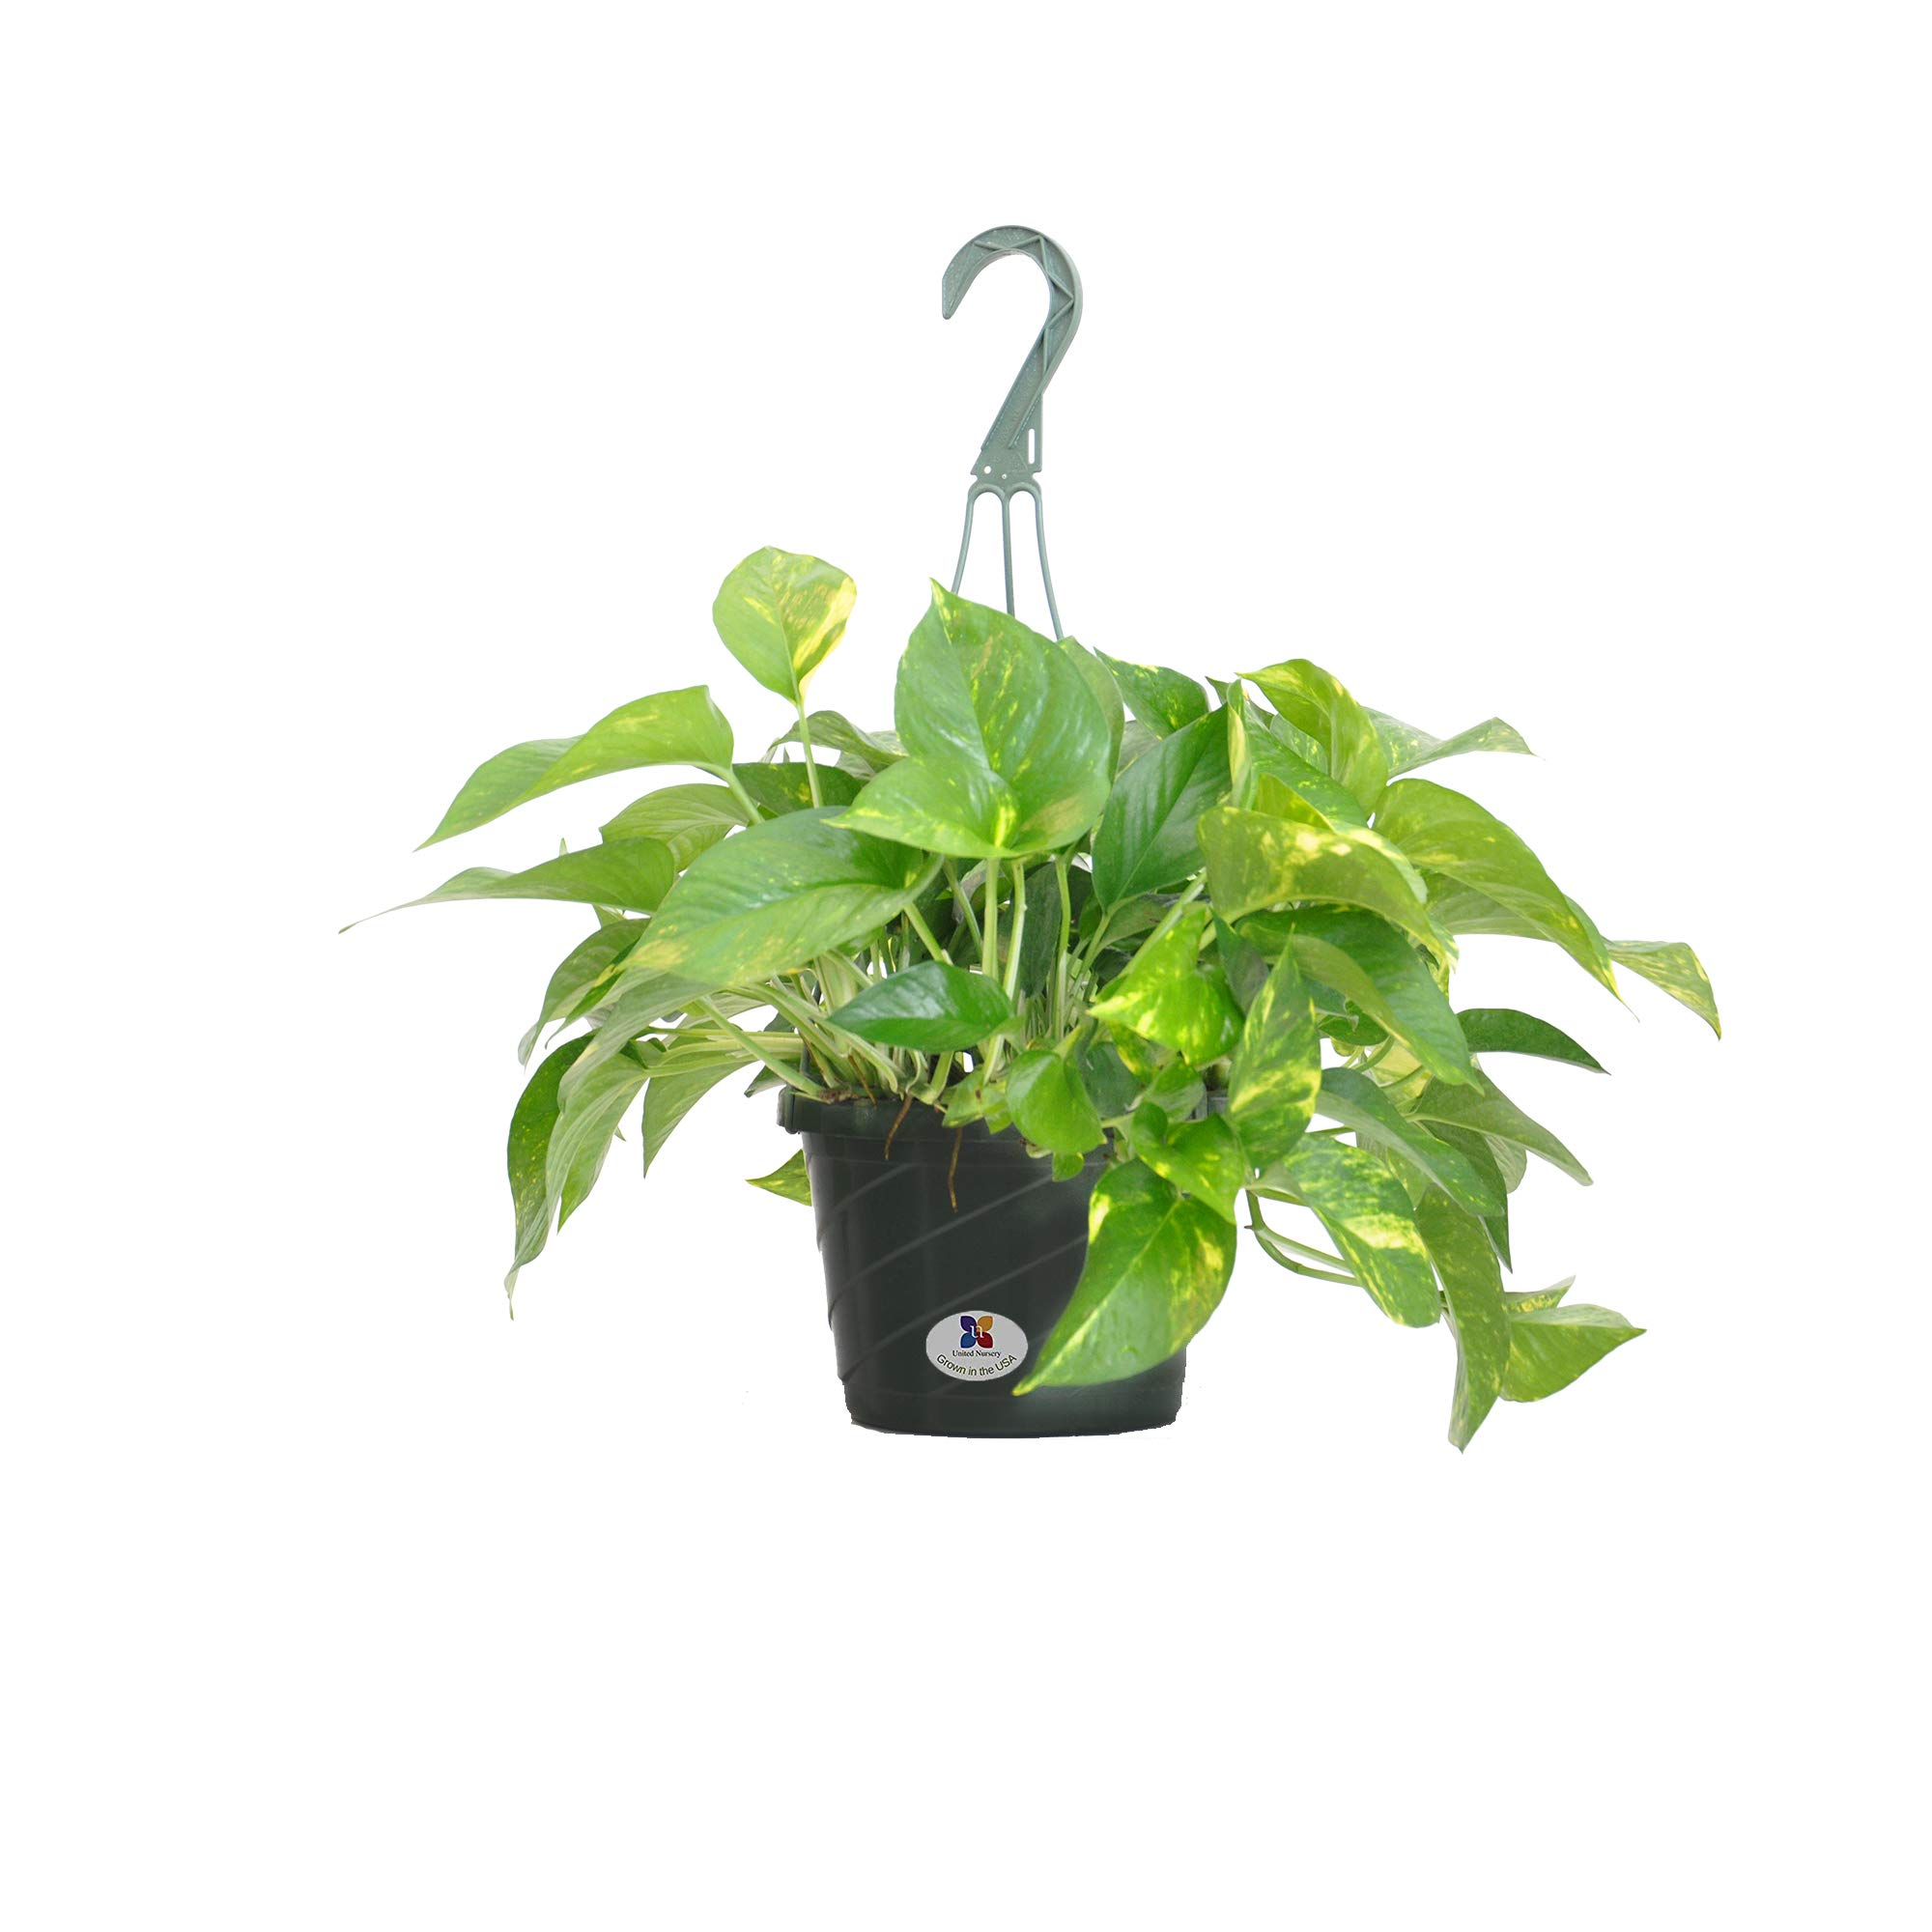 United Nursery Golden Pothos Epipremnum Aureum Devils Ivy Plant Live Indoor Outdoor Houseplant Ships in 8 Inch Hanging Basket 16-19 inches Tall by United Nursery